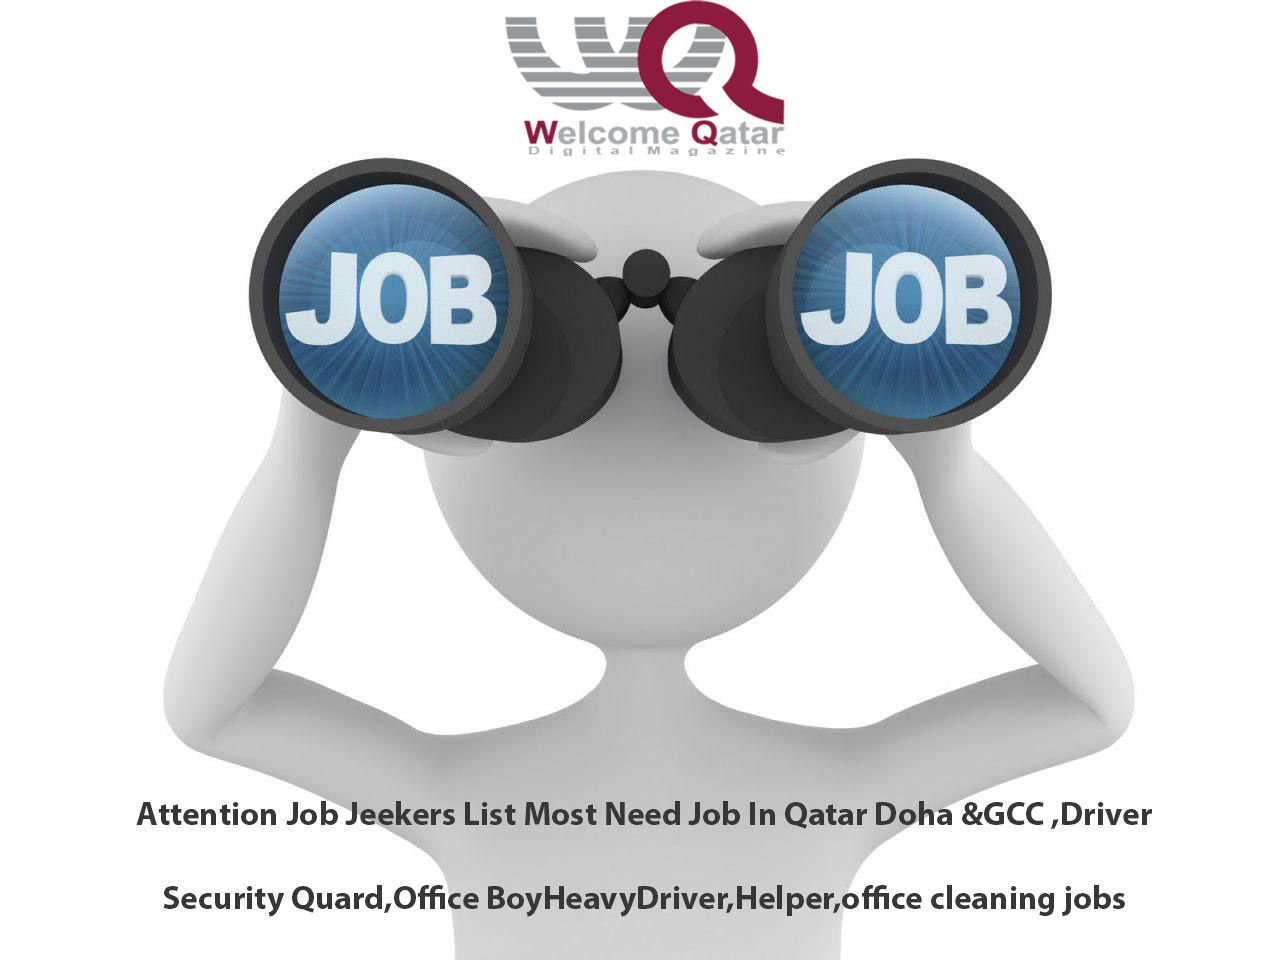 Job Doha Qatar Light Driver Job Offer In Doha Qatar Doha Driver Job Offer In Doha Qatar Doha Qatar Light Driver Job Hunting Driver Job Job Hunting Tips